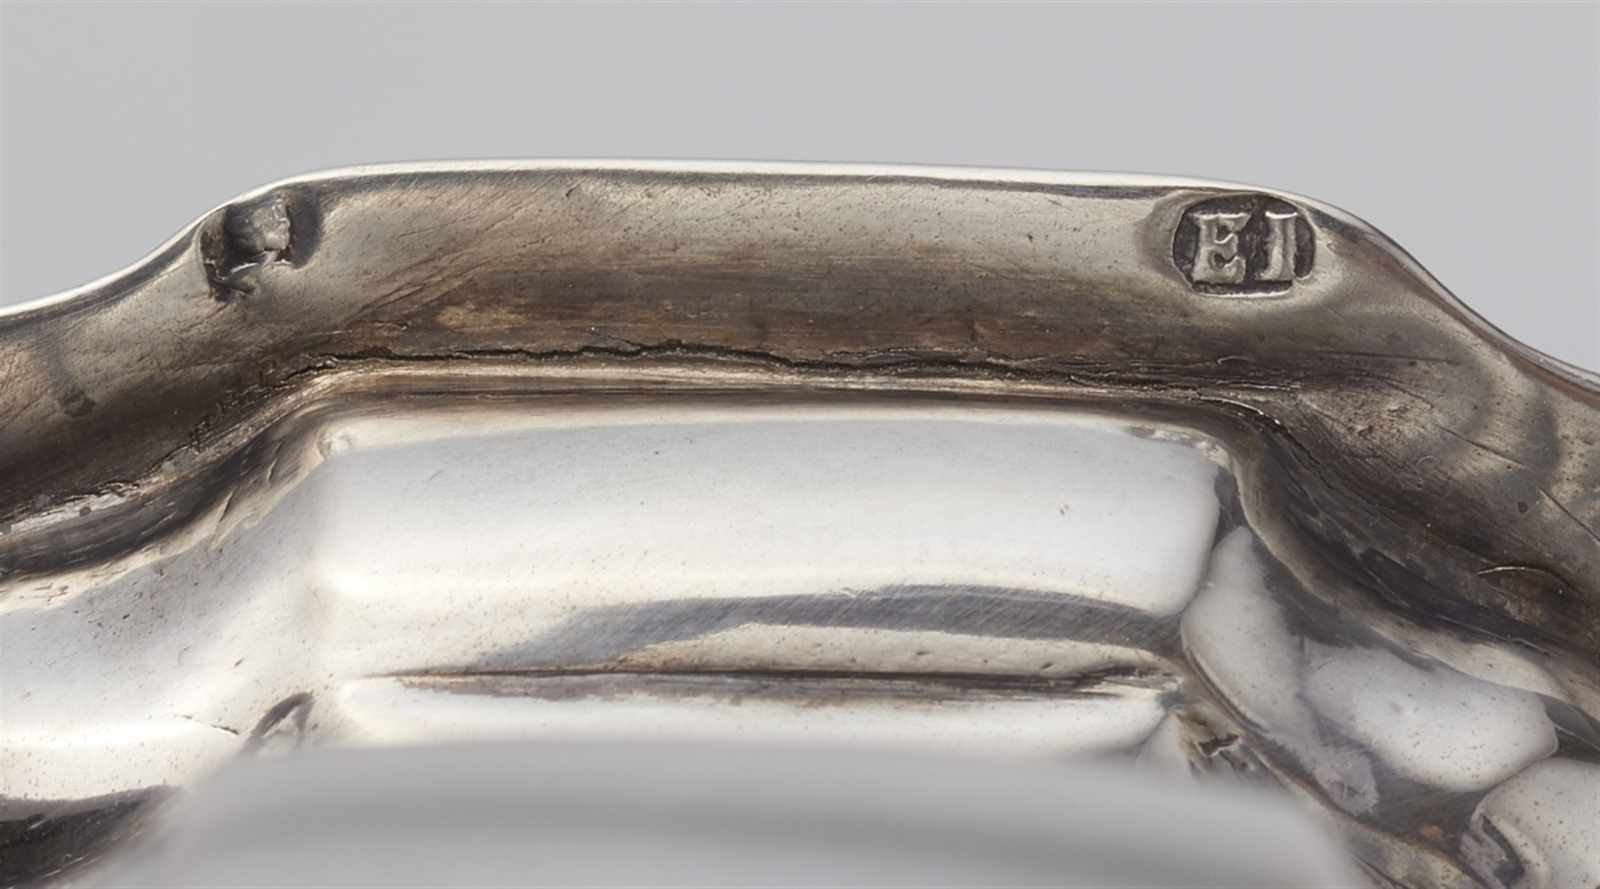 Lot 323 - An Augsburg silver sugar casterBaluster form caster, the pierced upper section with a minor loss.